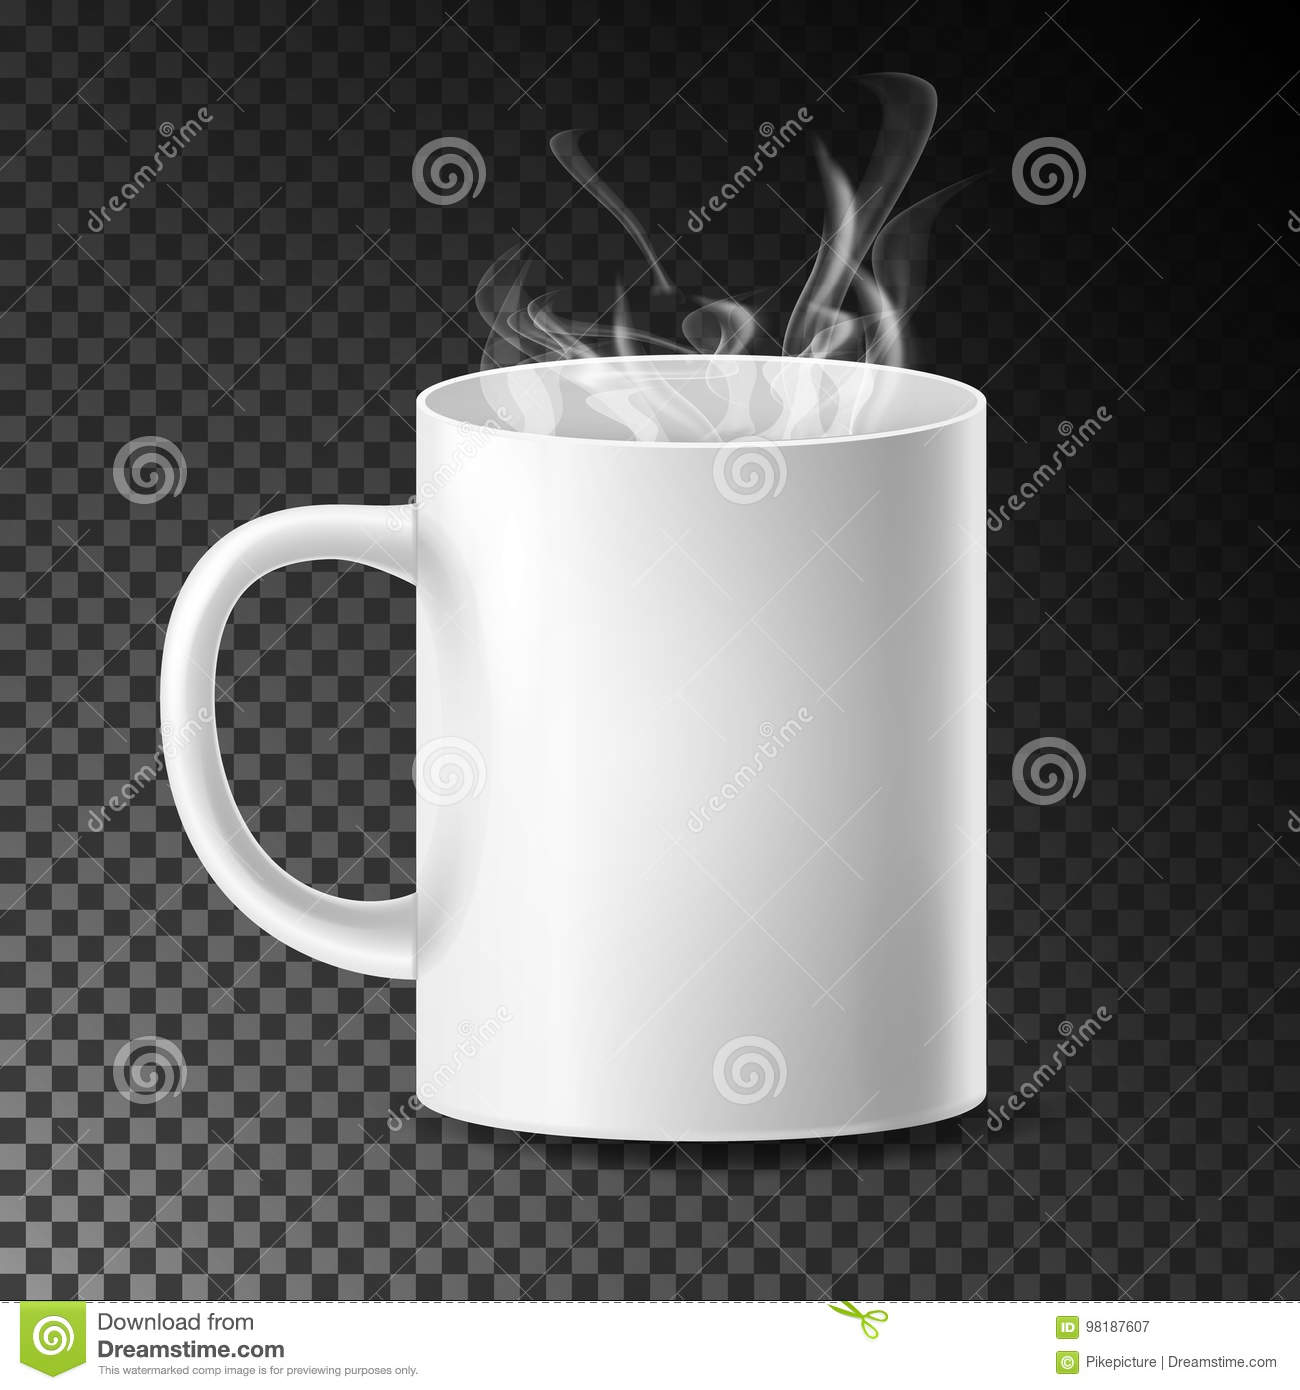 White Cup, Mug Vector. Realistic Ceramic Or Plastic Cup On Transparent Background. Empty Classic Cafe Cup With